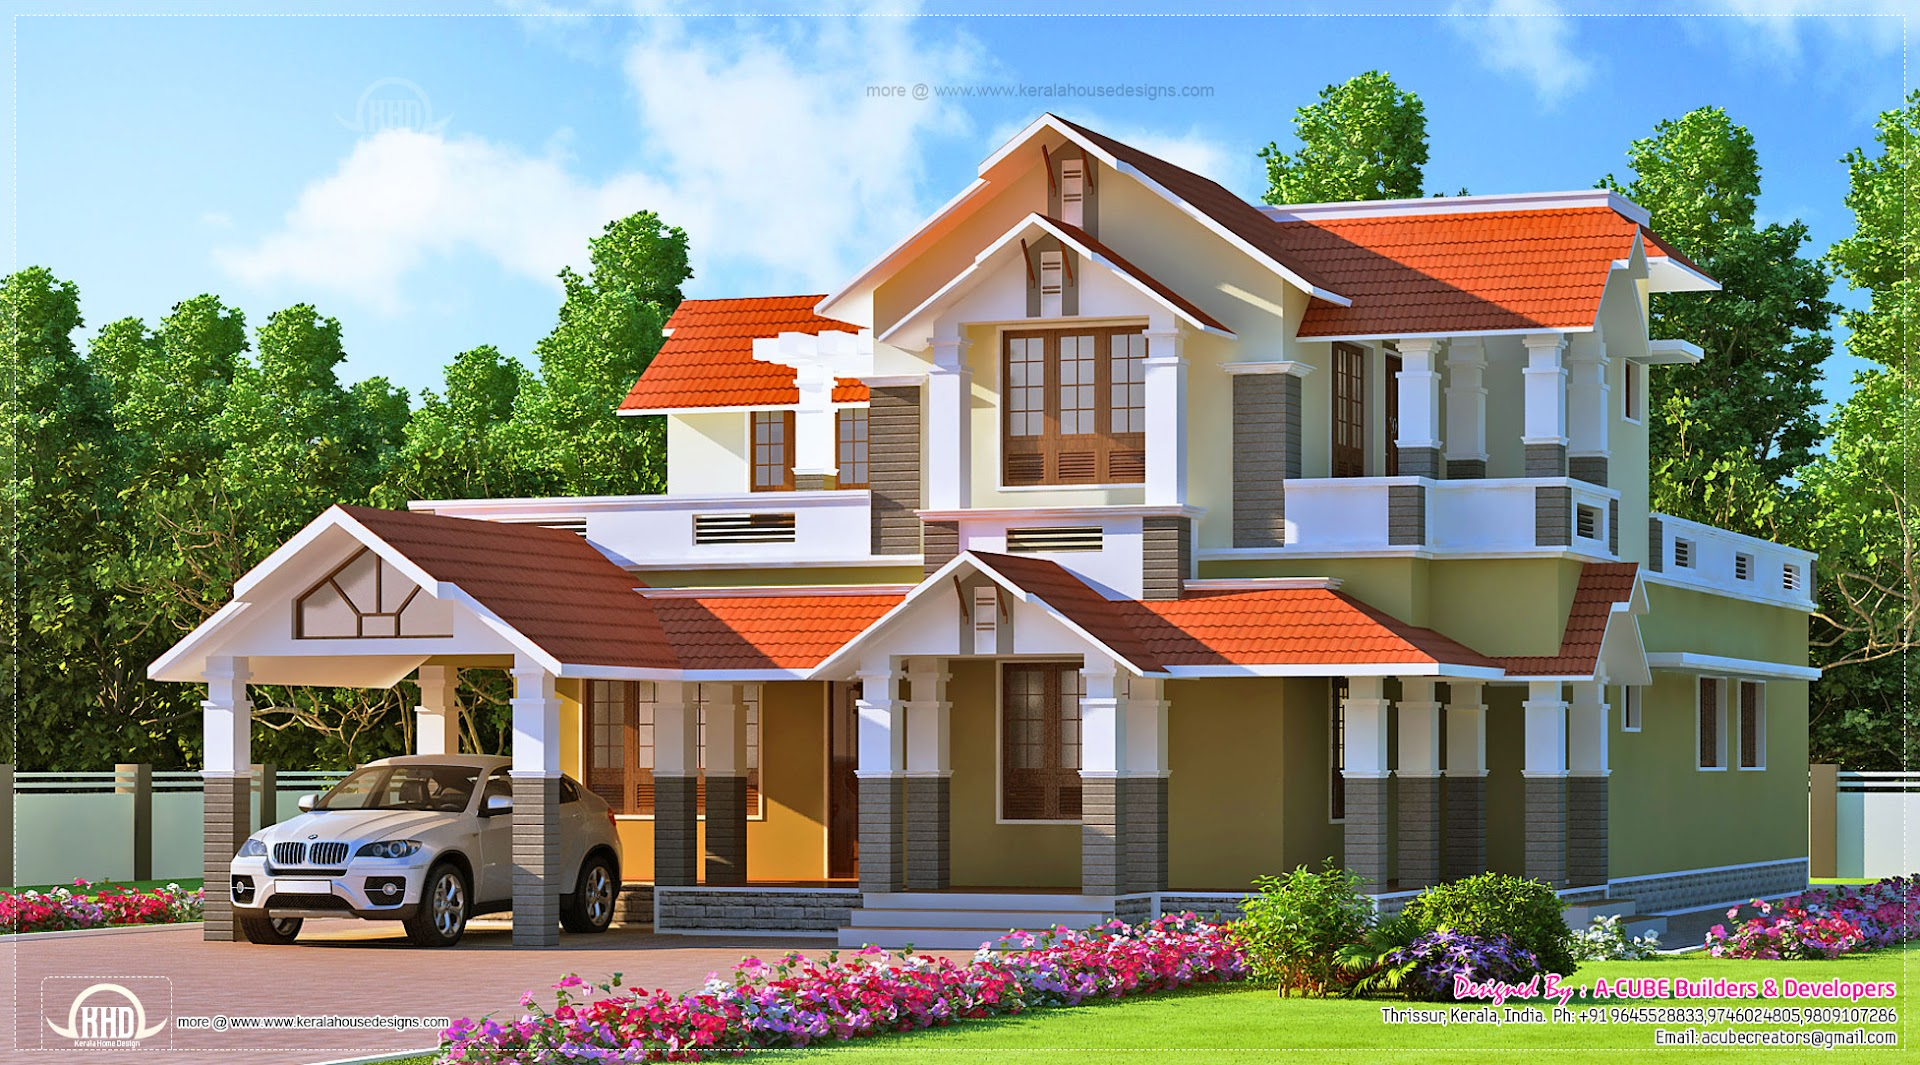 April 2013 kerala home design and floor plans Create dream home